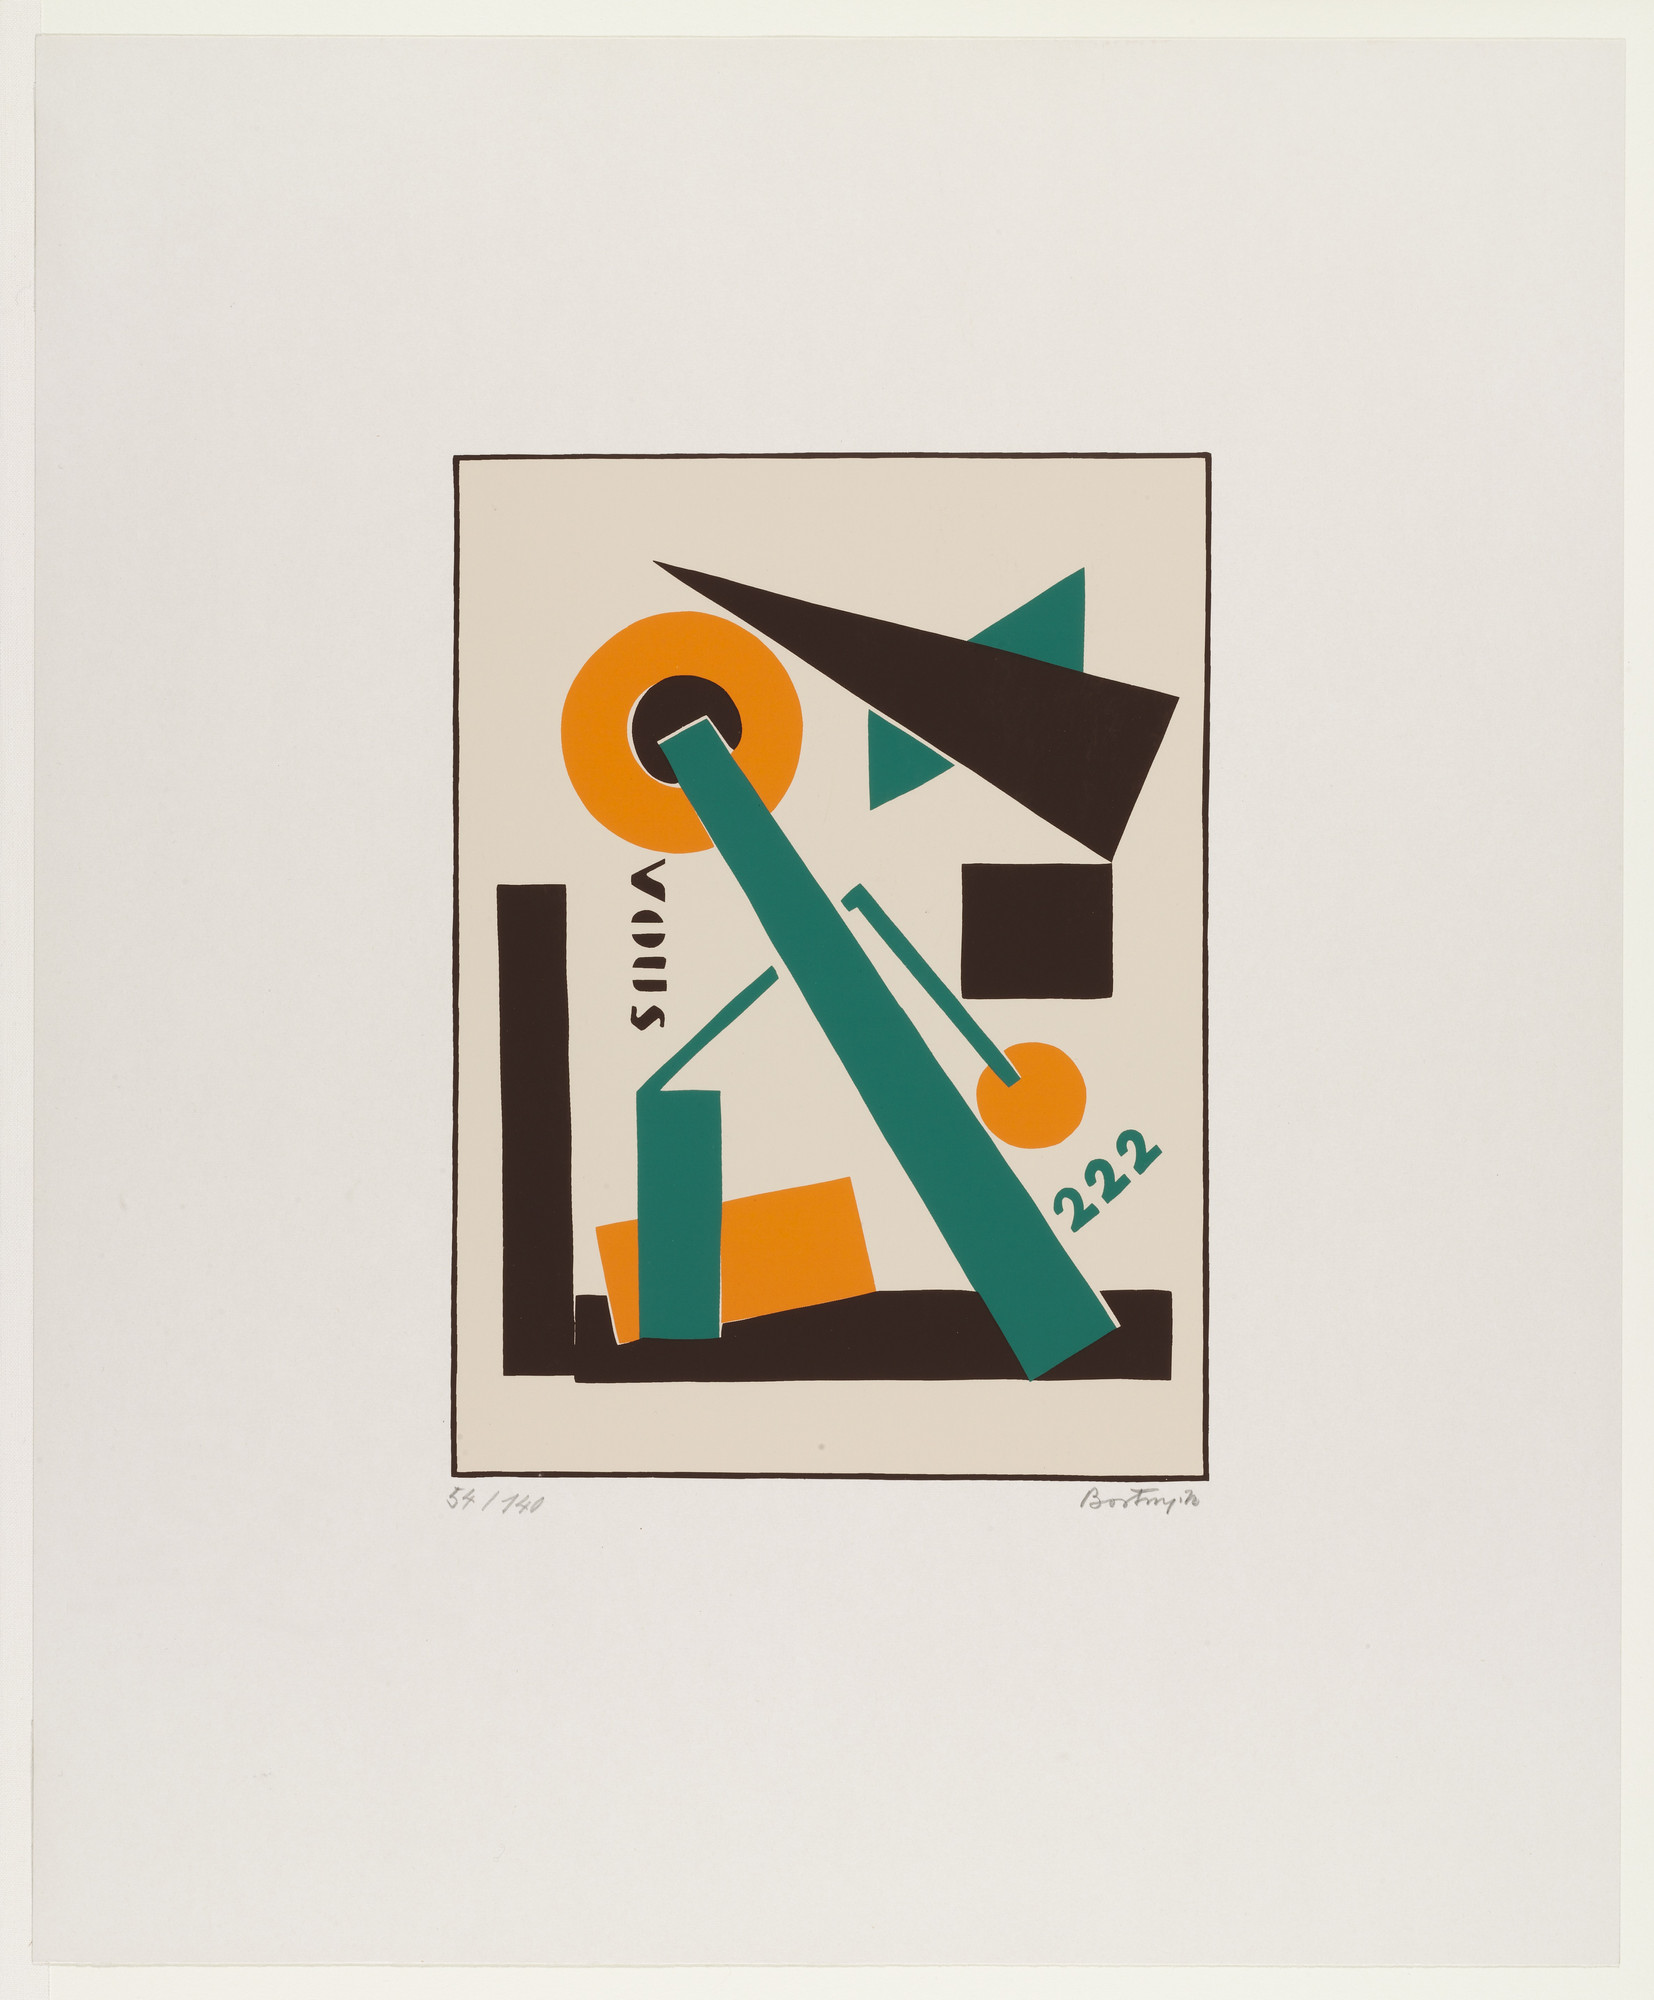 Sándor (Alexander) Bortnyik. Untitled from the series Album MA. 1921, reprinted 1970